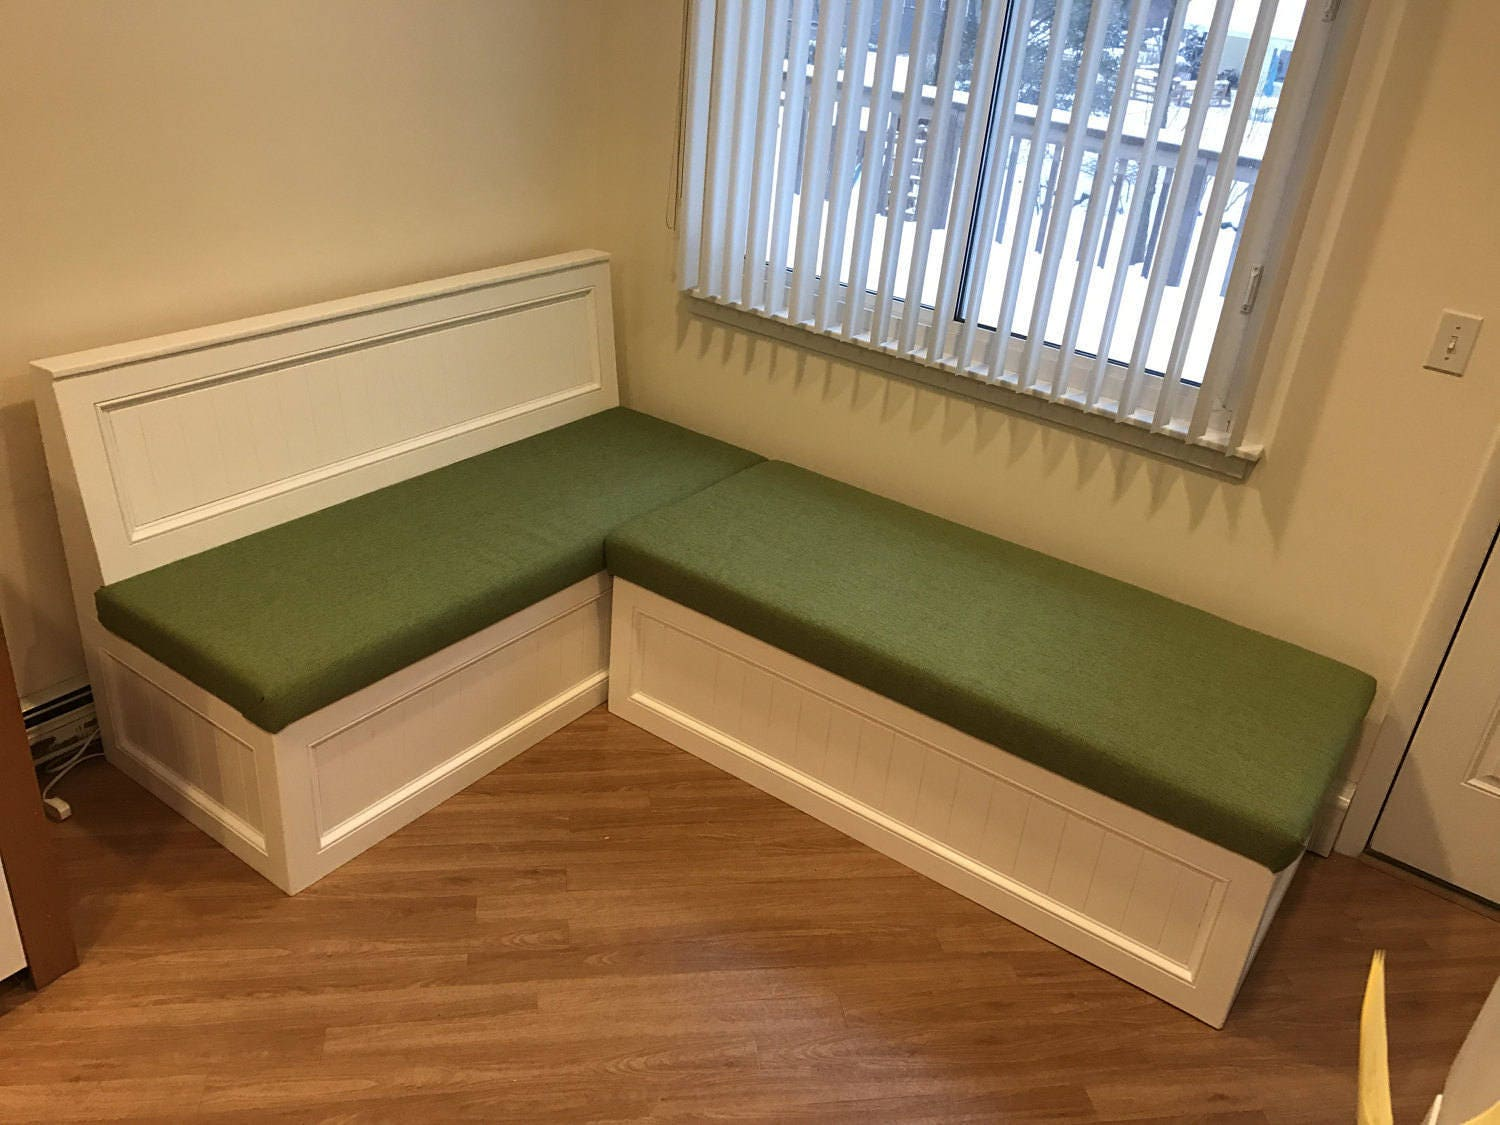 L Shaped Bench